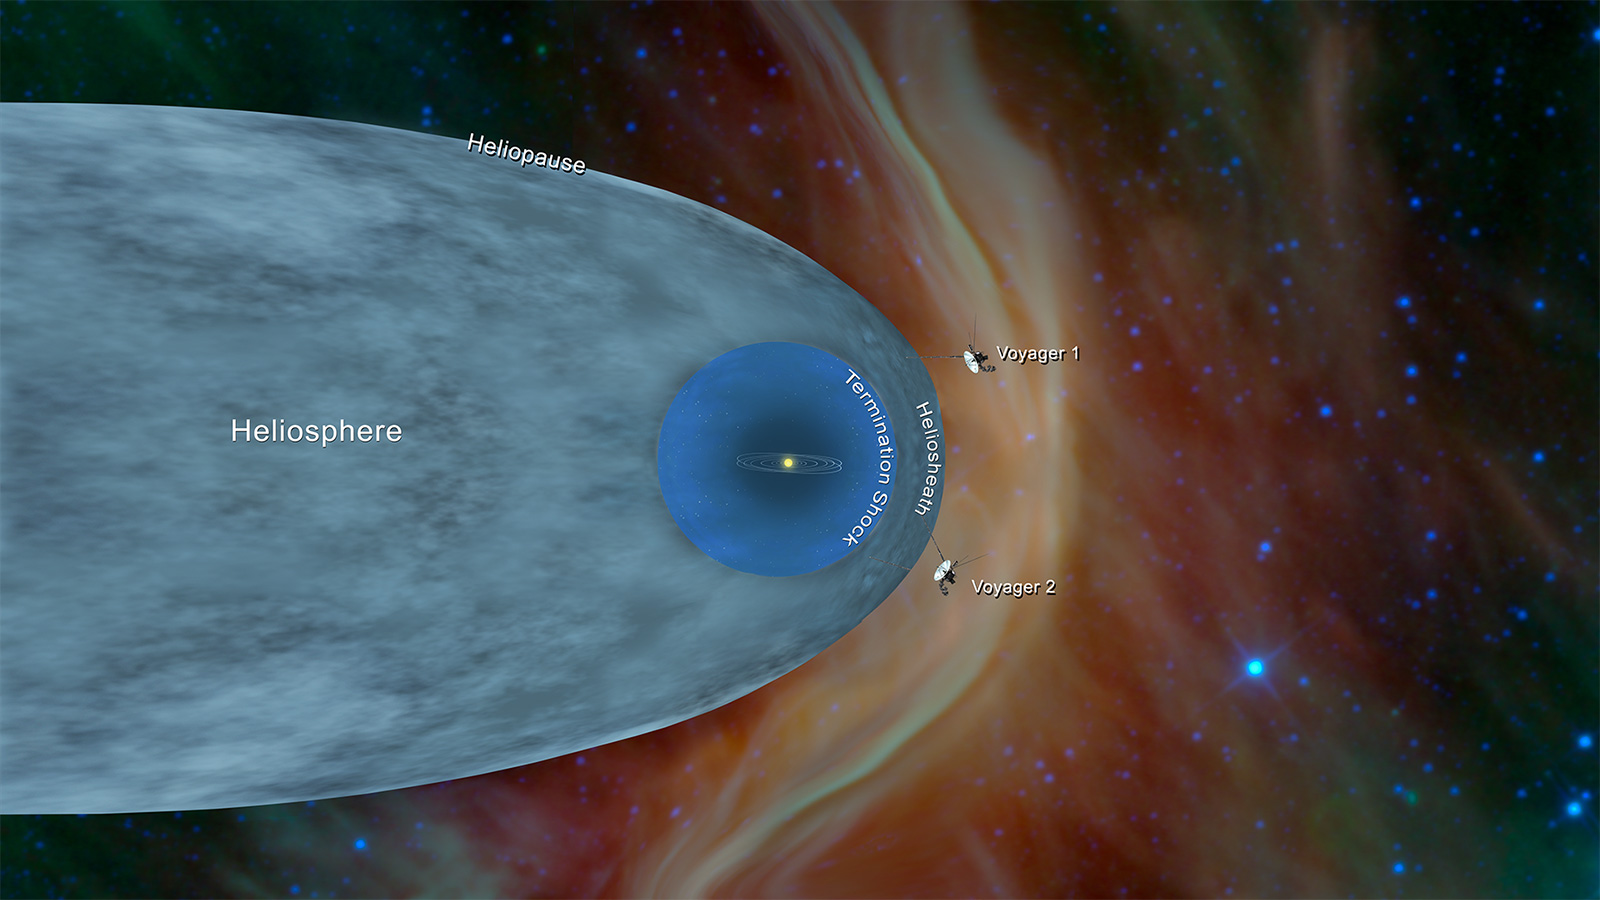 Illustrated view of the wake our solar system makes in space.